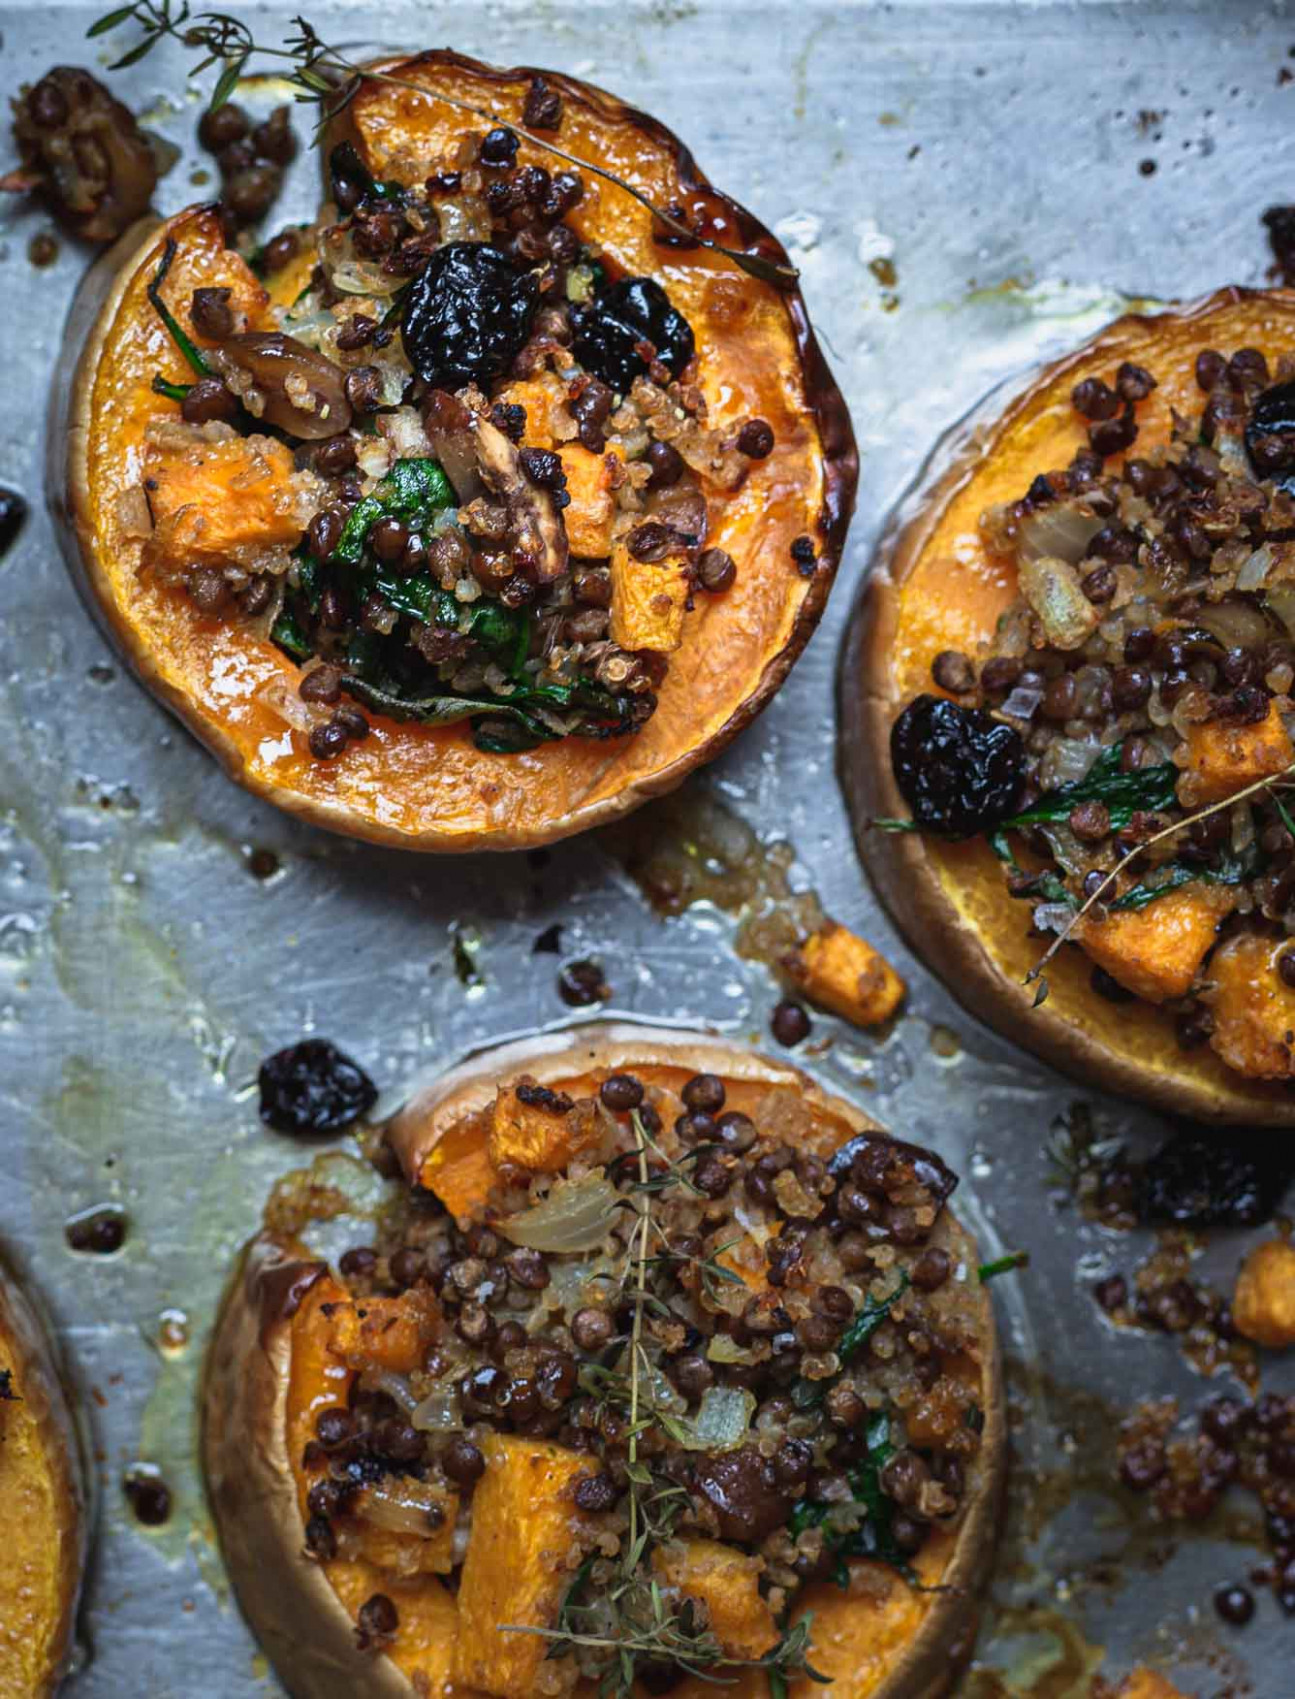 Vegetarian Holiday Stuffed Squash (V, GF) | My Goodness Kitchen - vegetarian xmas main course recipes